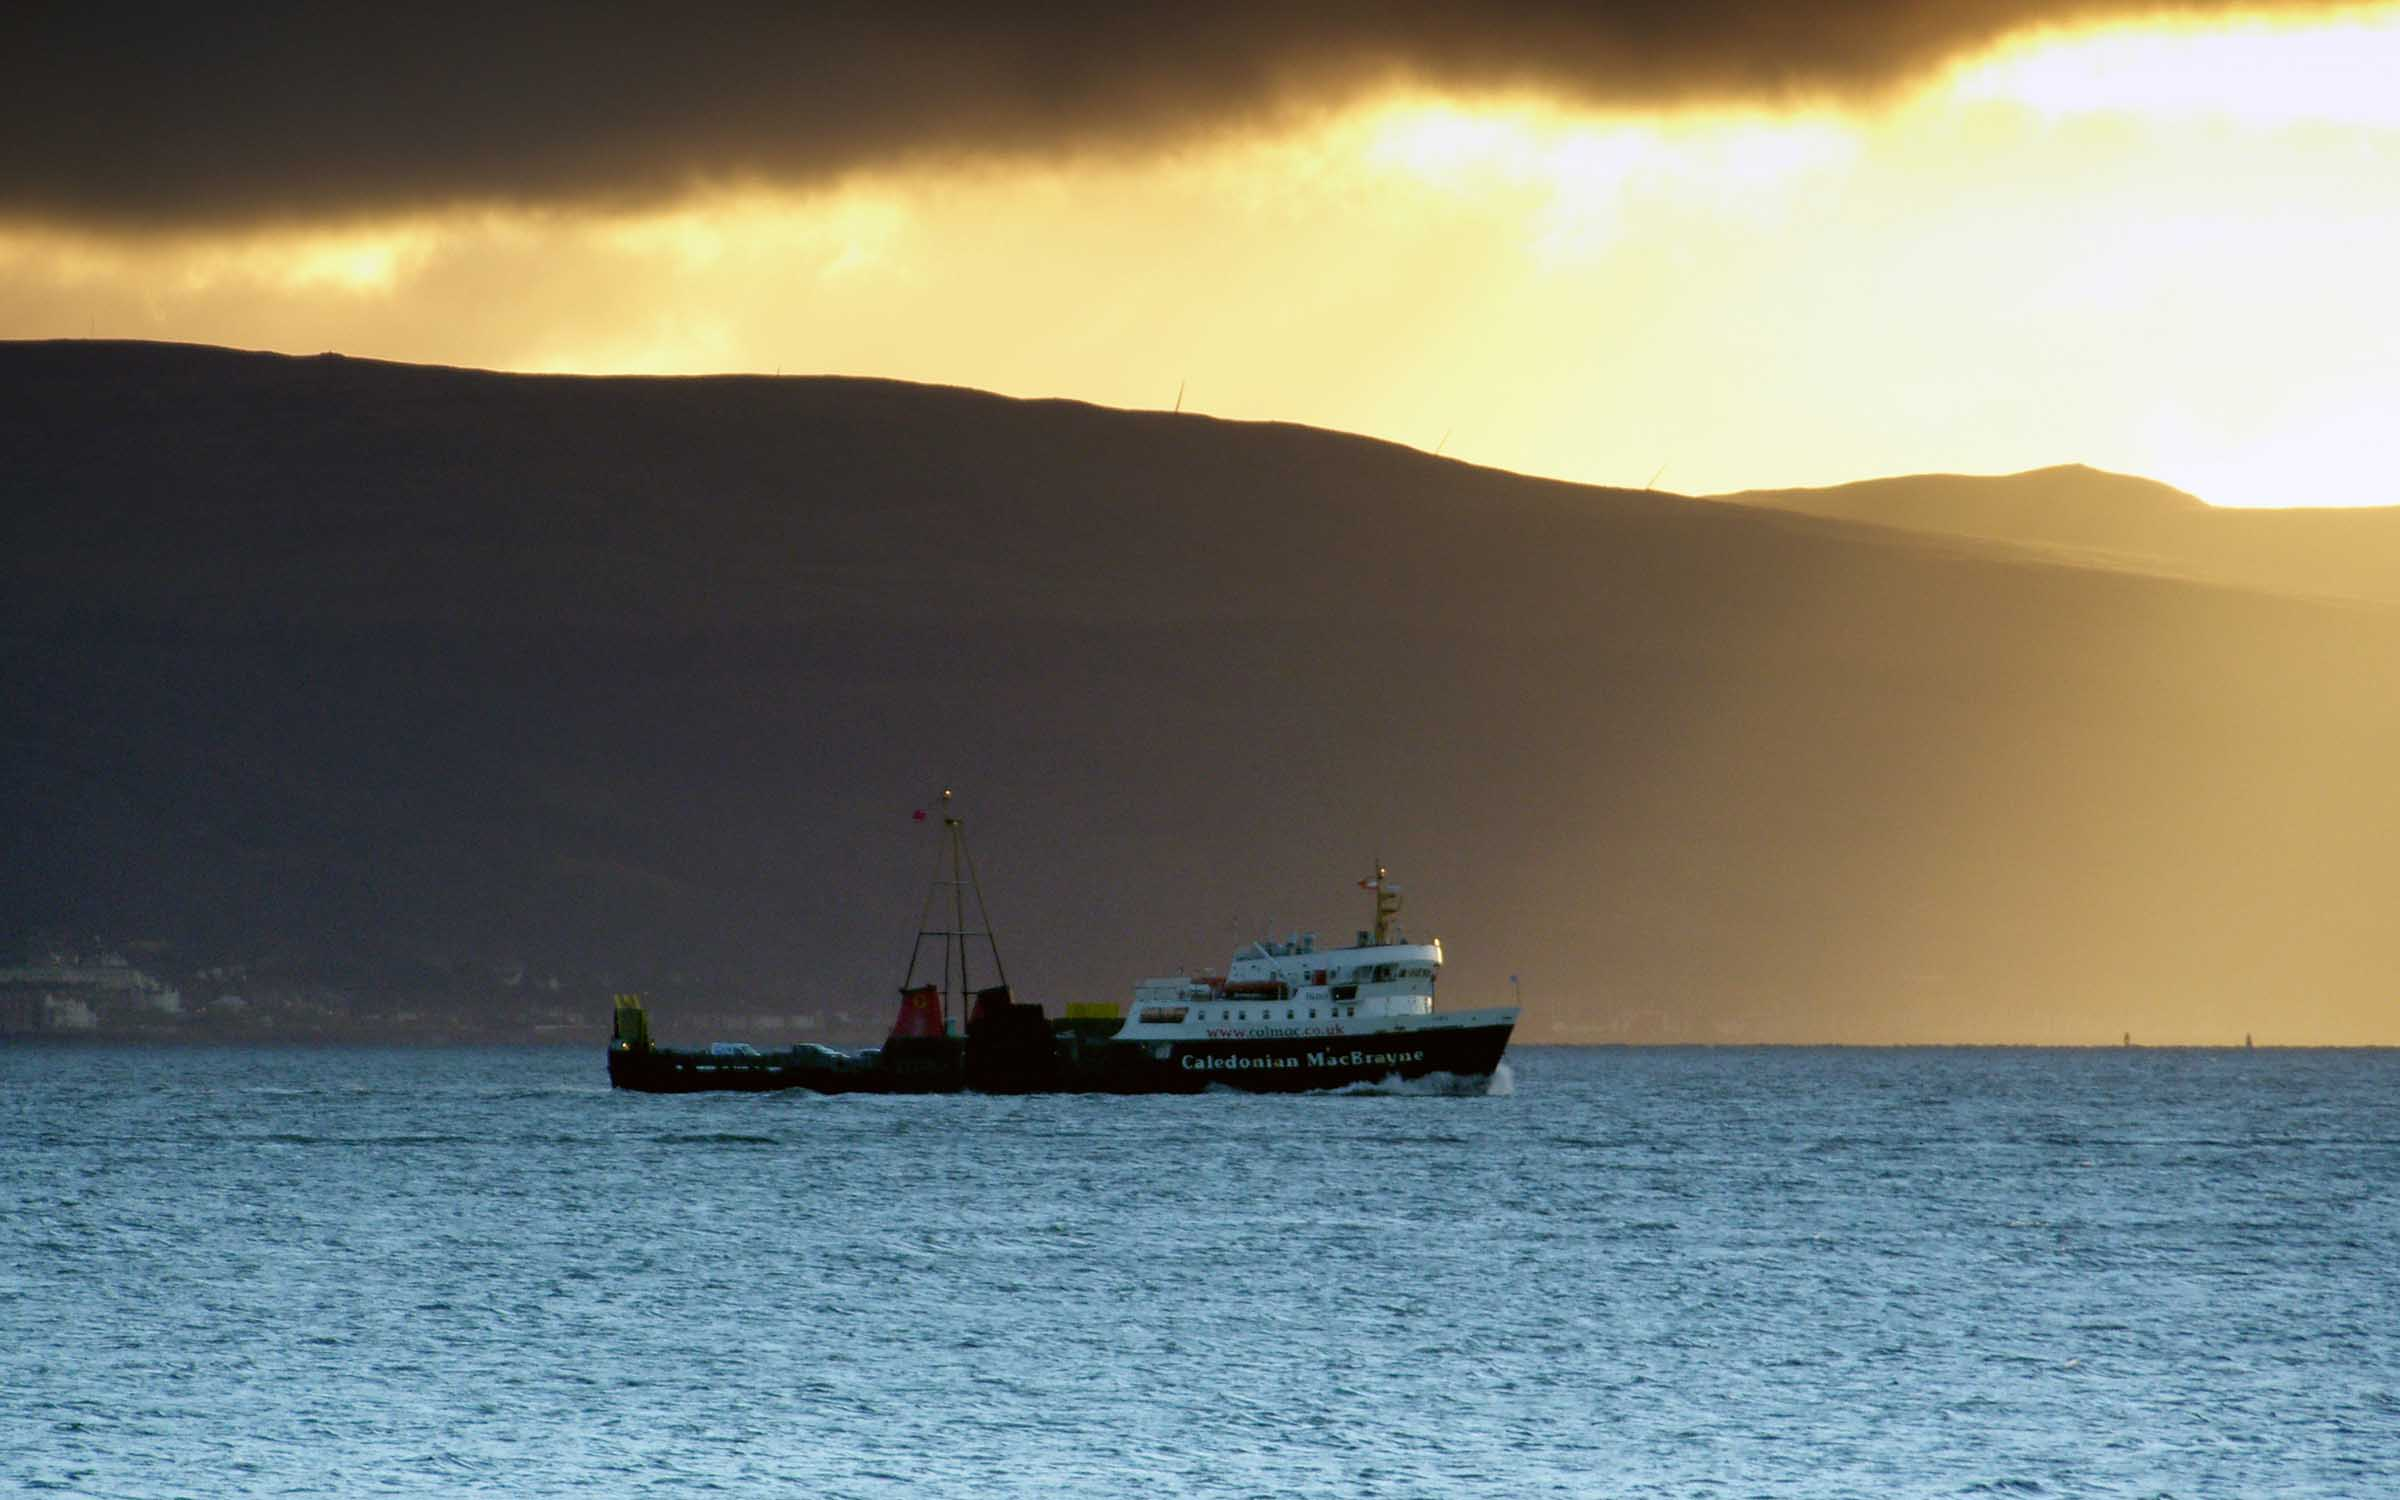 Juno crossing to Rothesay (Ships of CalMac)